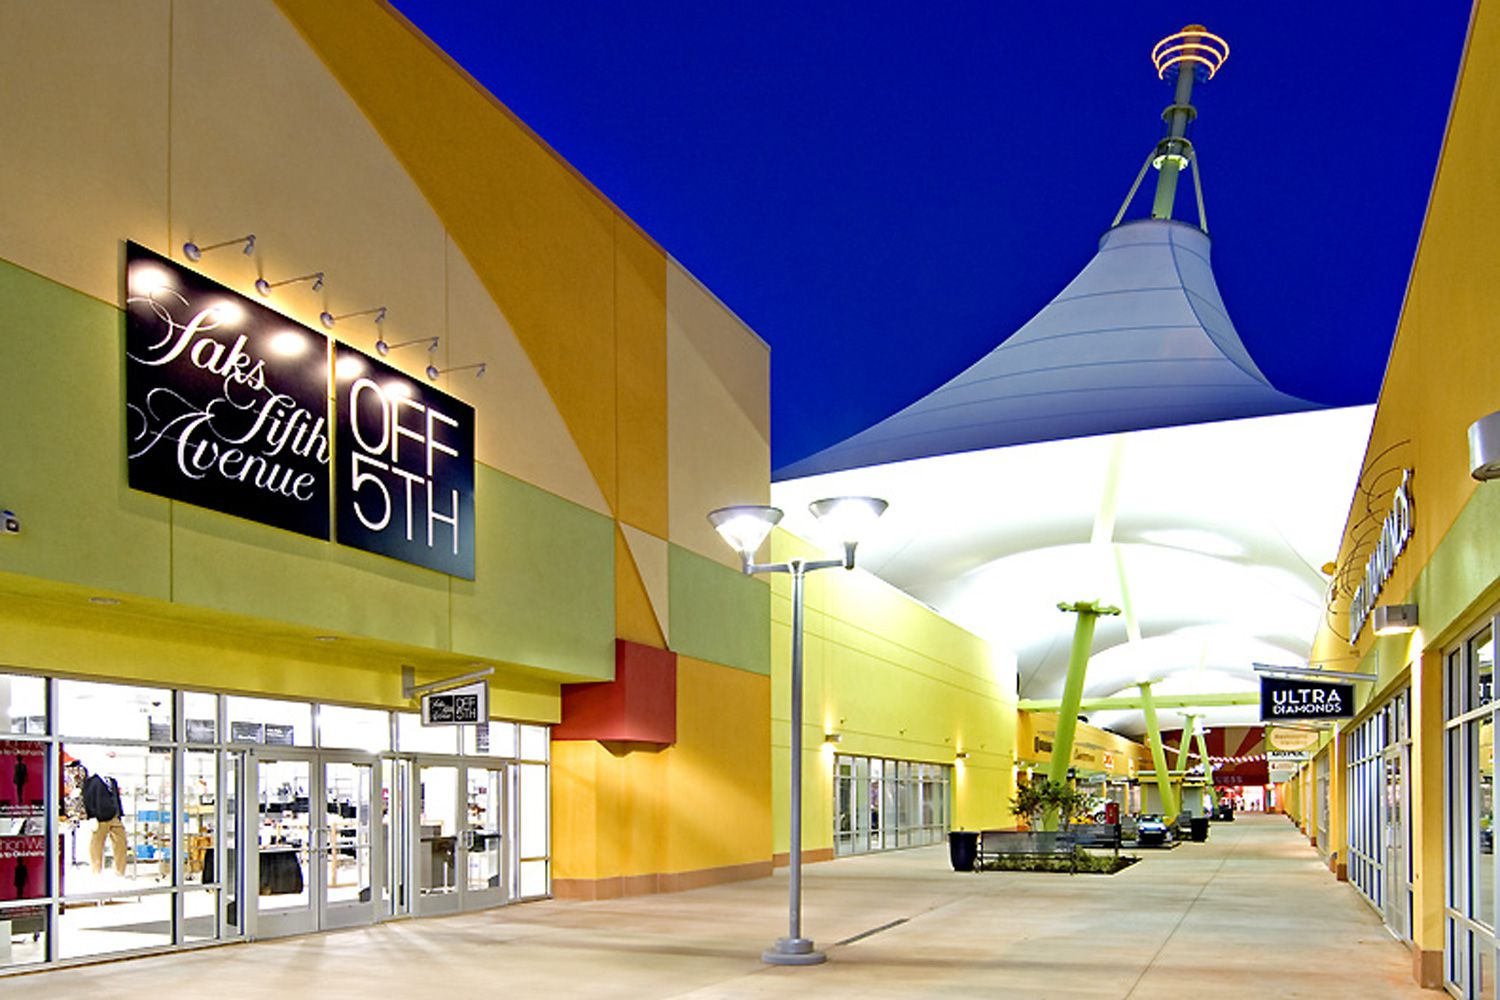 After reaching an agreement with the city for public infrastructure improvement, Horizon Group Properties, Inc. opened the Oklahoma City outlet mall, officially named